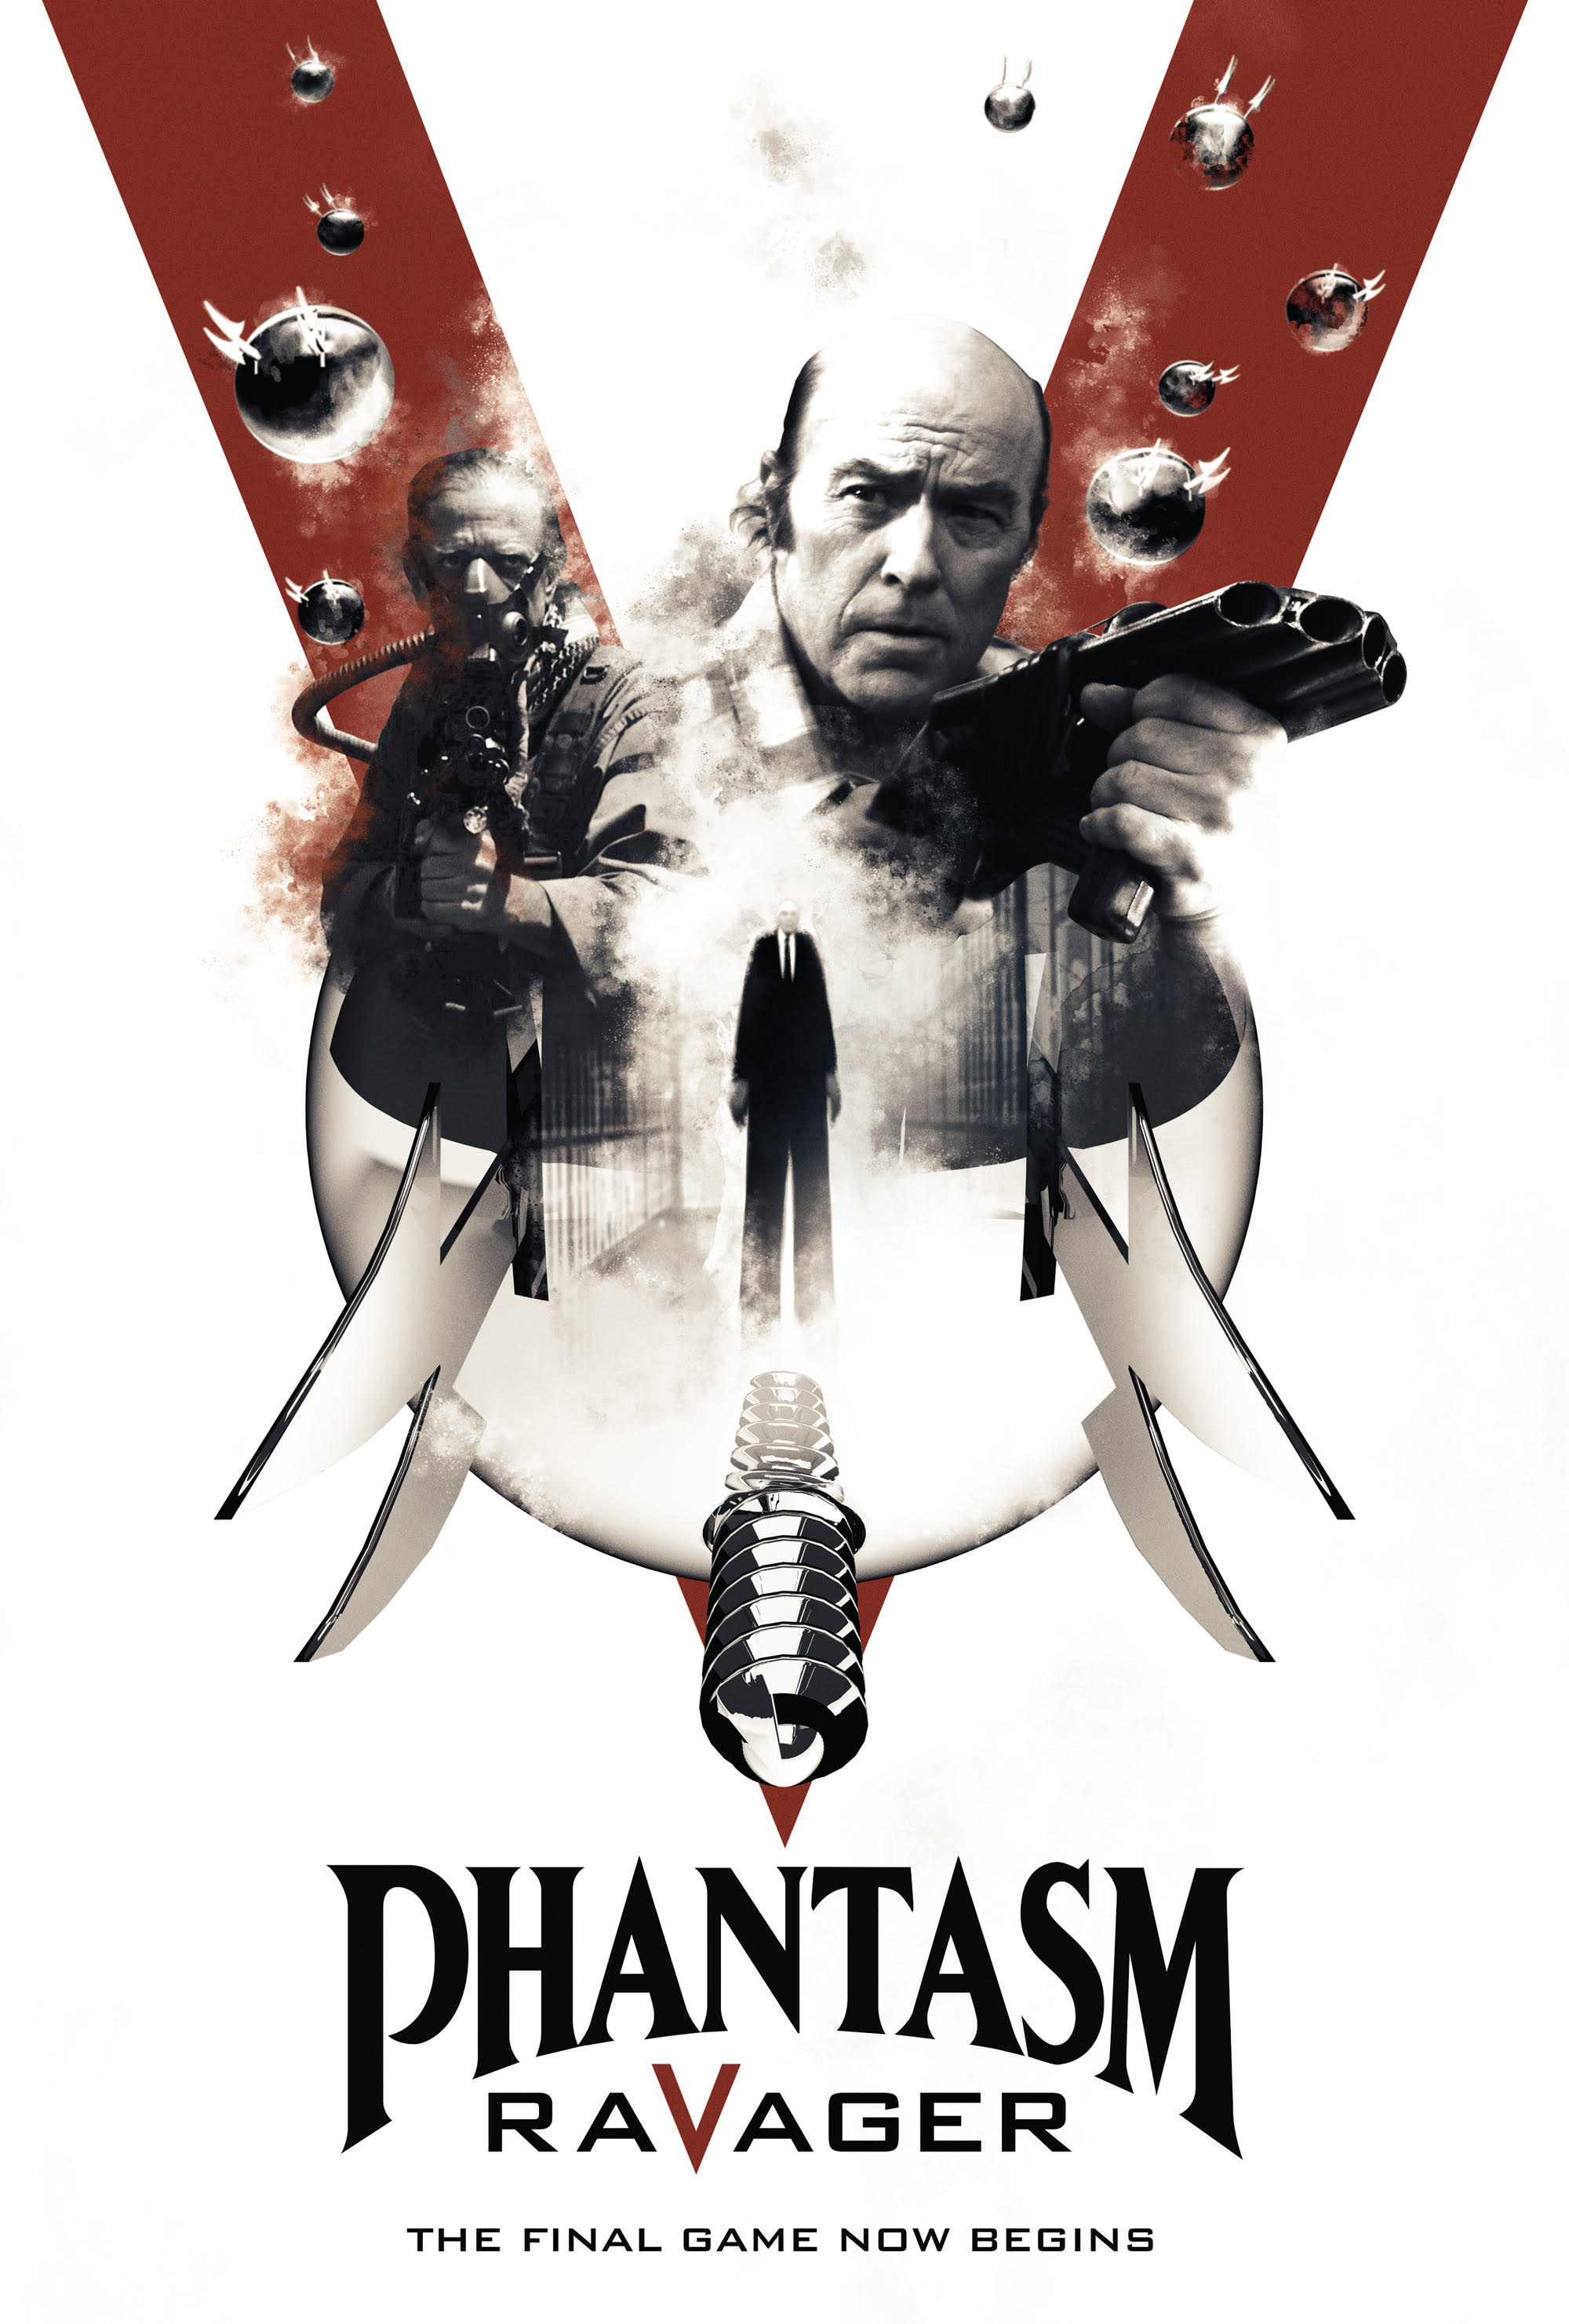 Phantasm Ravager 2016